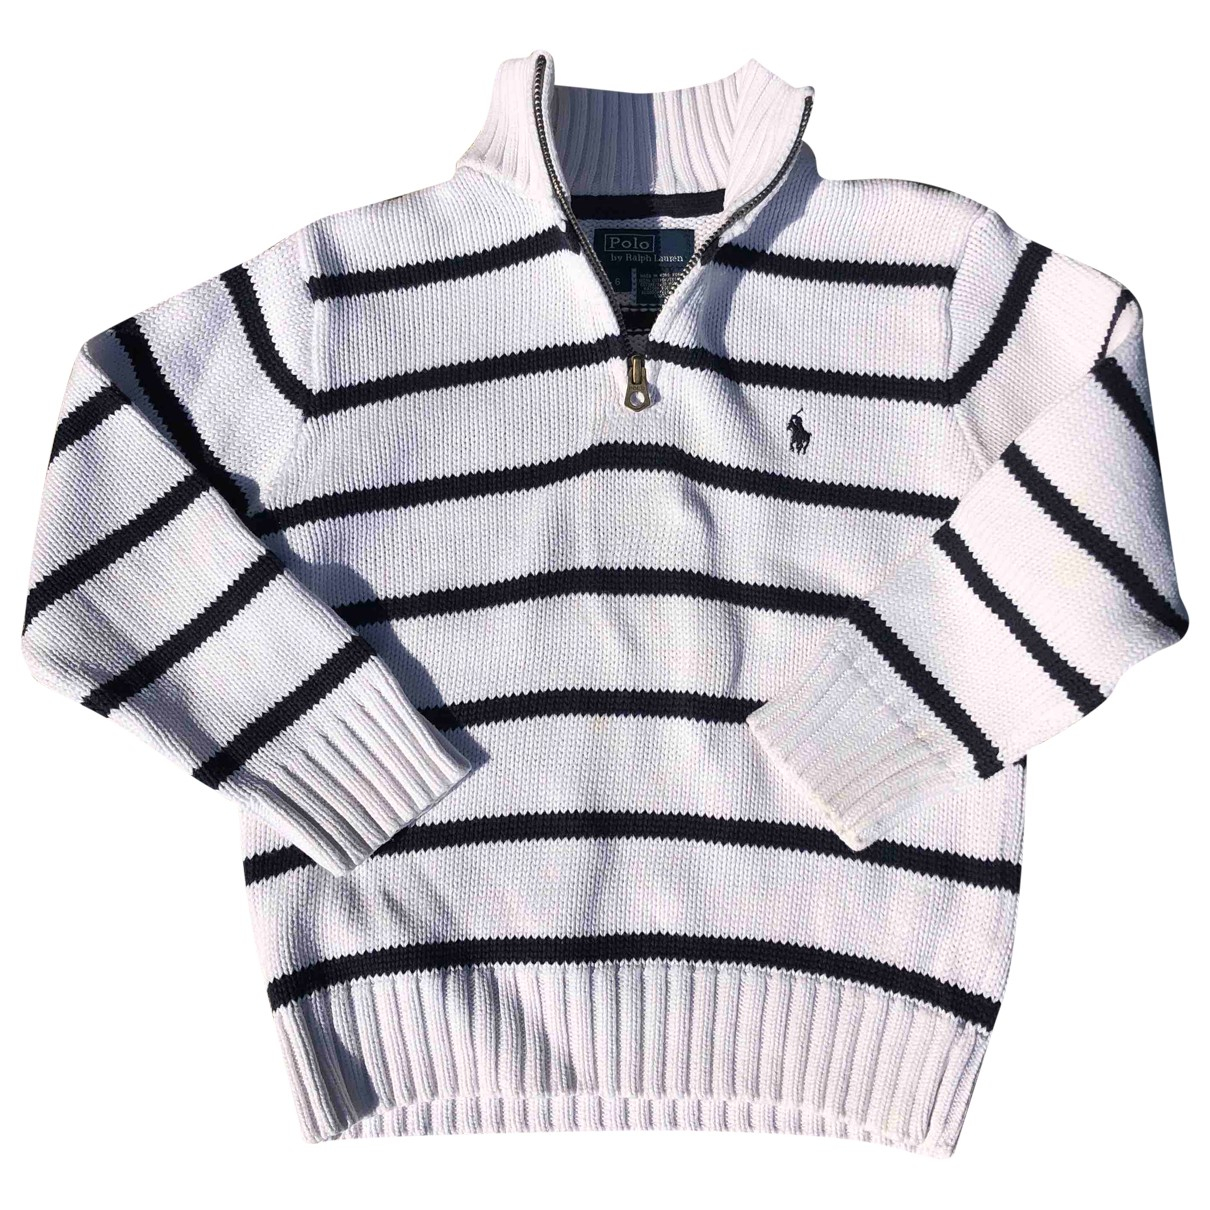 Polo Ralph Lauren \N White Cotton Knitwear for Kids 6 years - up to 114cm FR